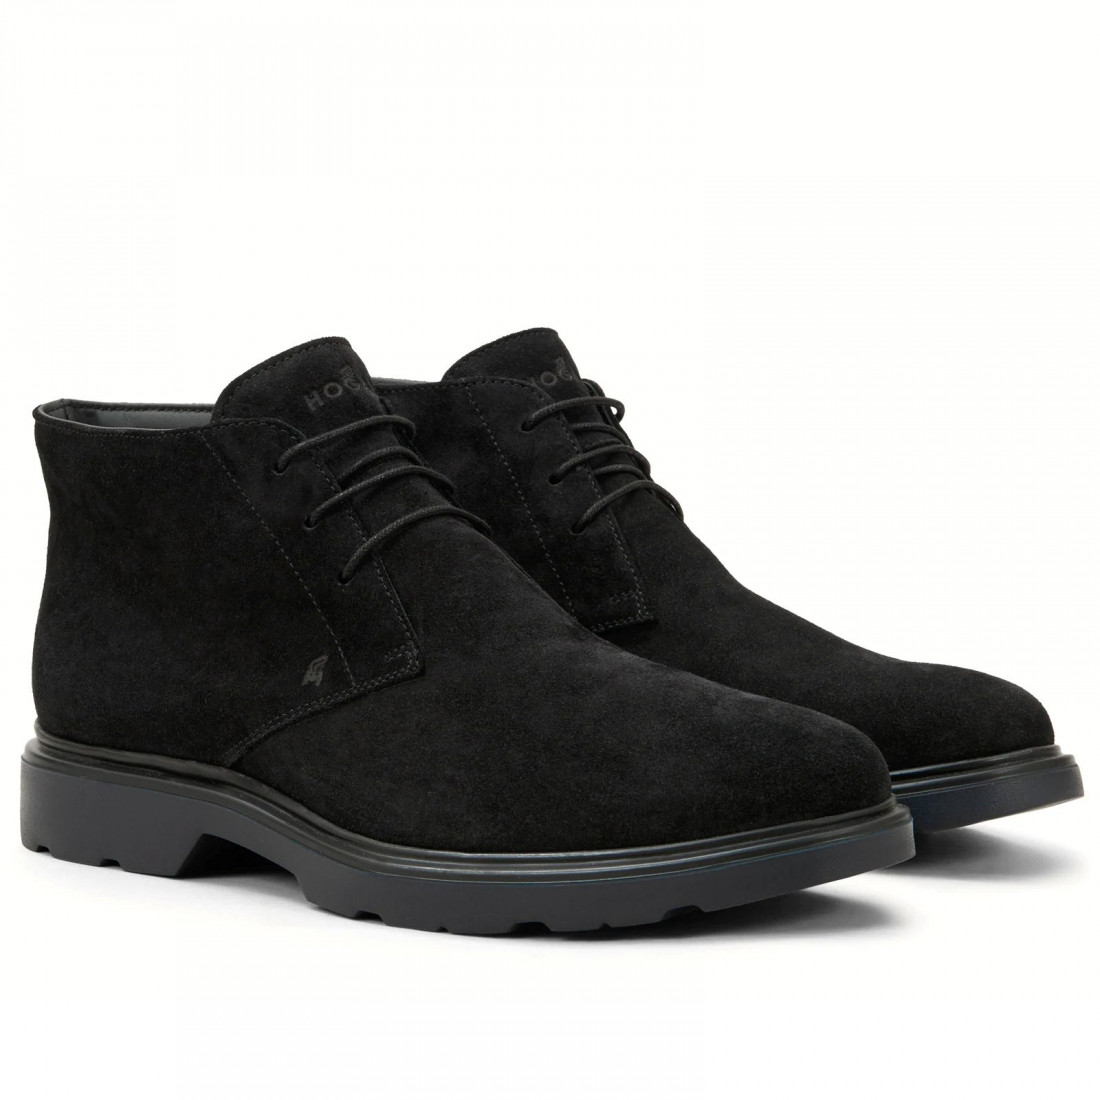 lace up ankle boots man hogan hxm3930w352hg0b999 7541